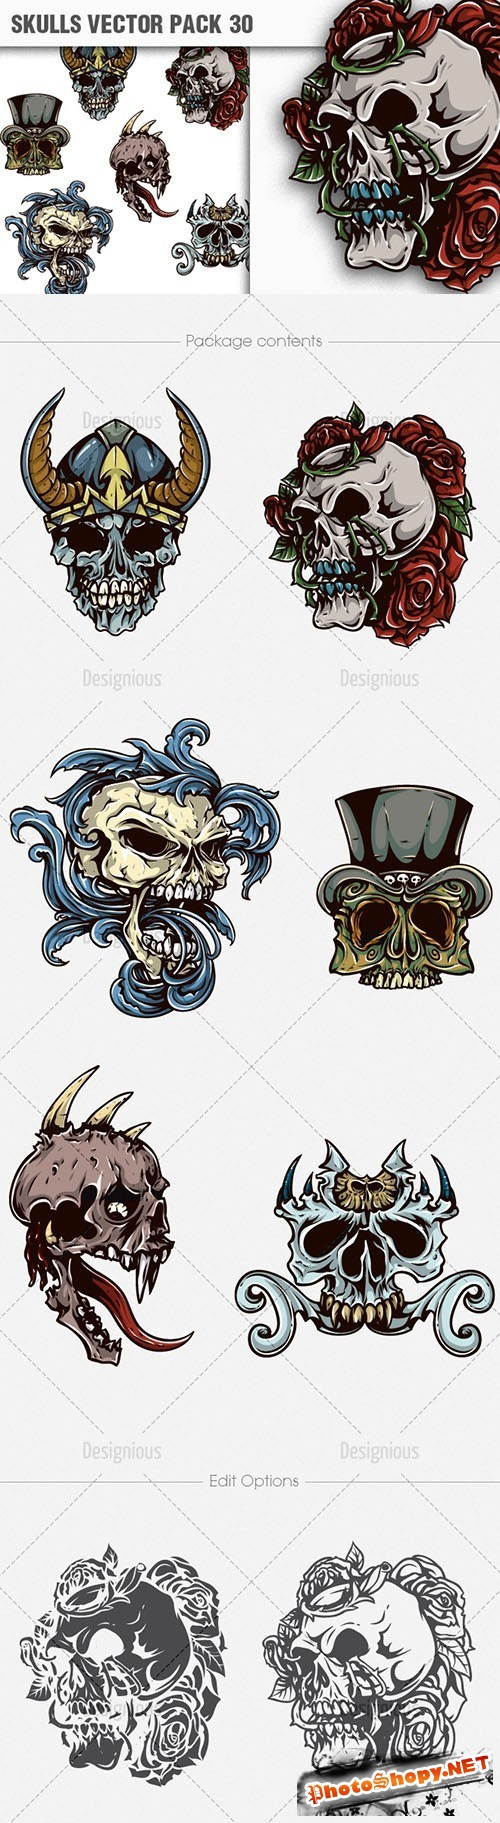 Skulls Vector Illustrations Pack 30